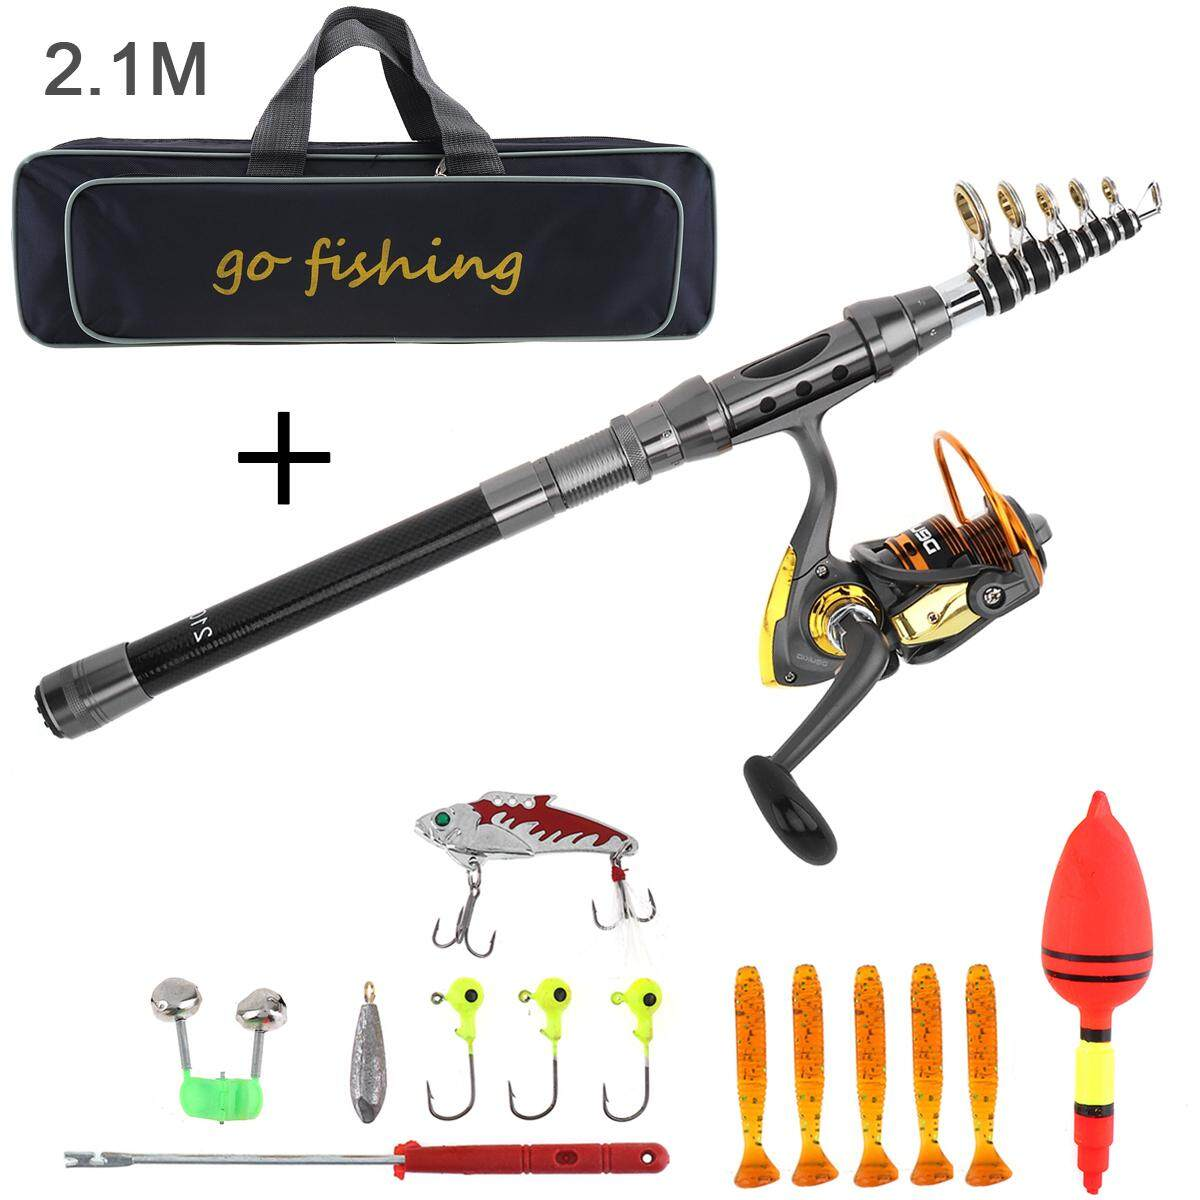 hight resolution of 2 1m carbon fiber fishing rod reel combo full kits 2000 spinning reel with fishing bag